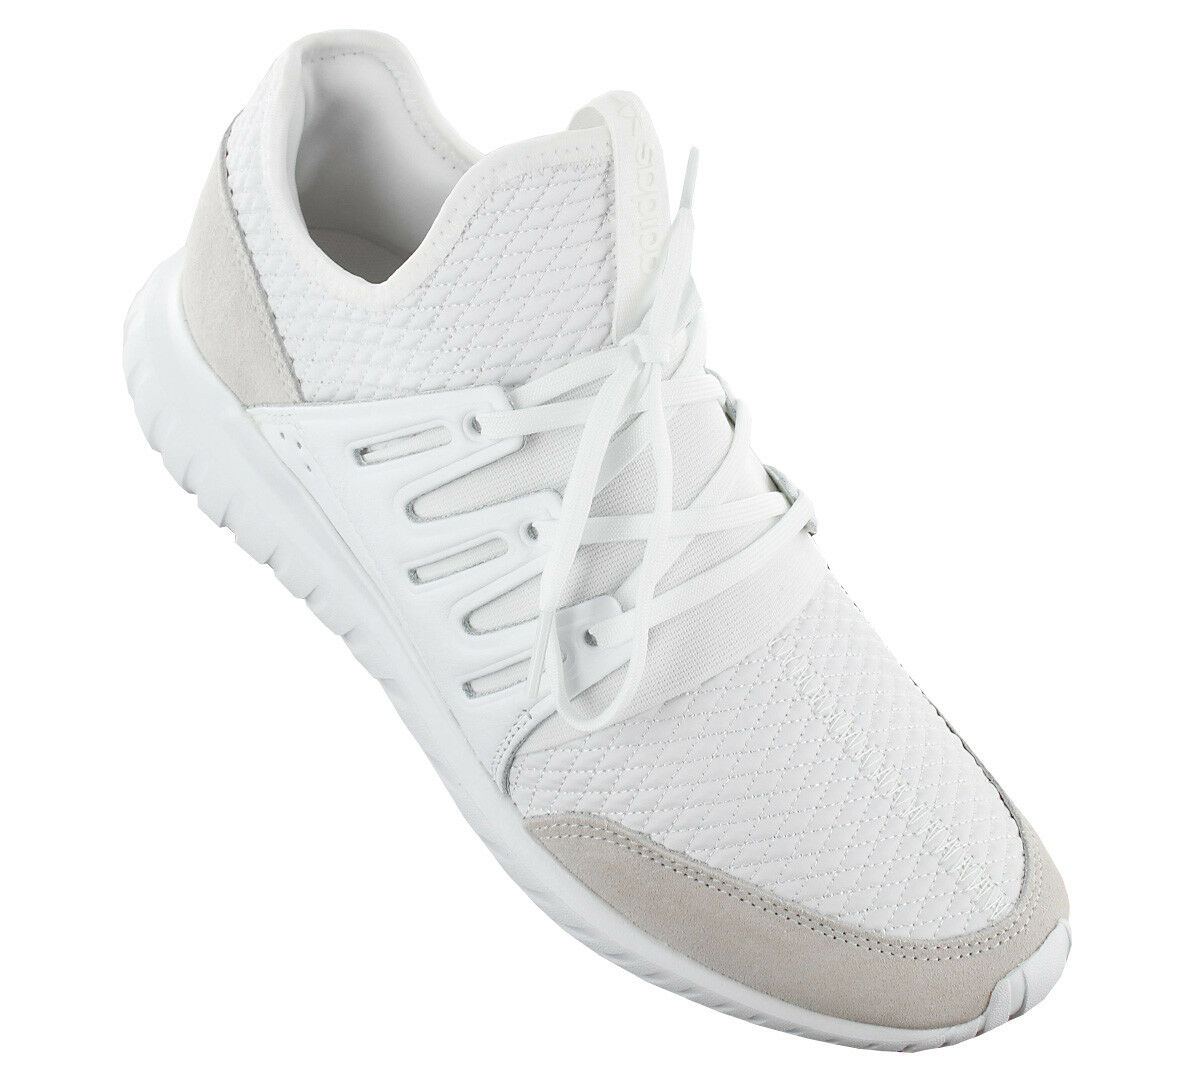 NEW adidas Tubular Radial BB2398 Men''s shoes Trainers Sneakers SALE